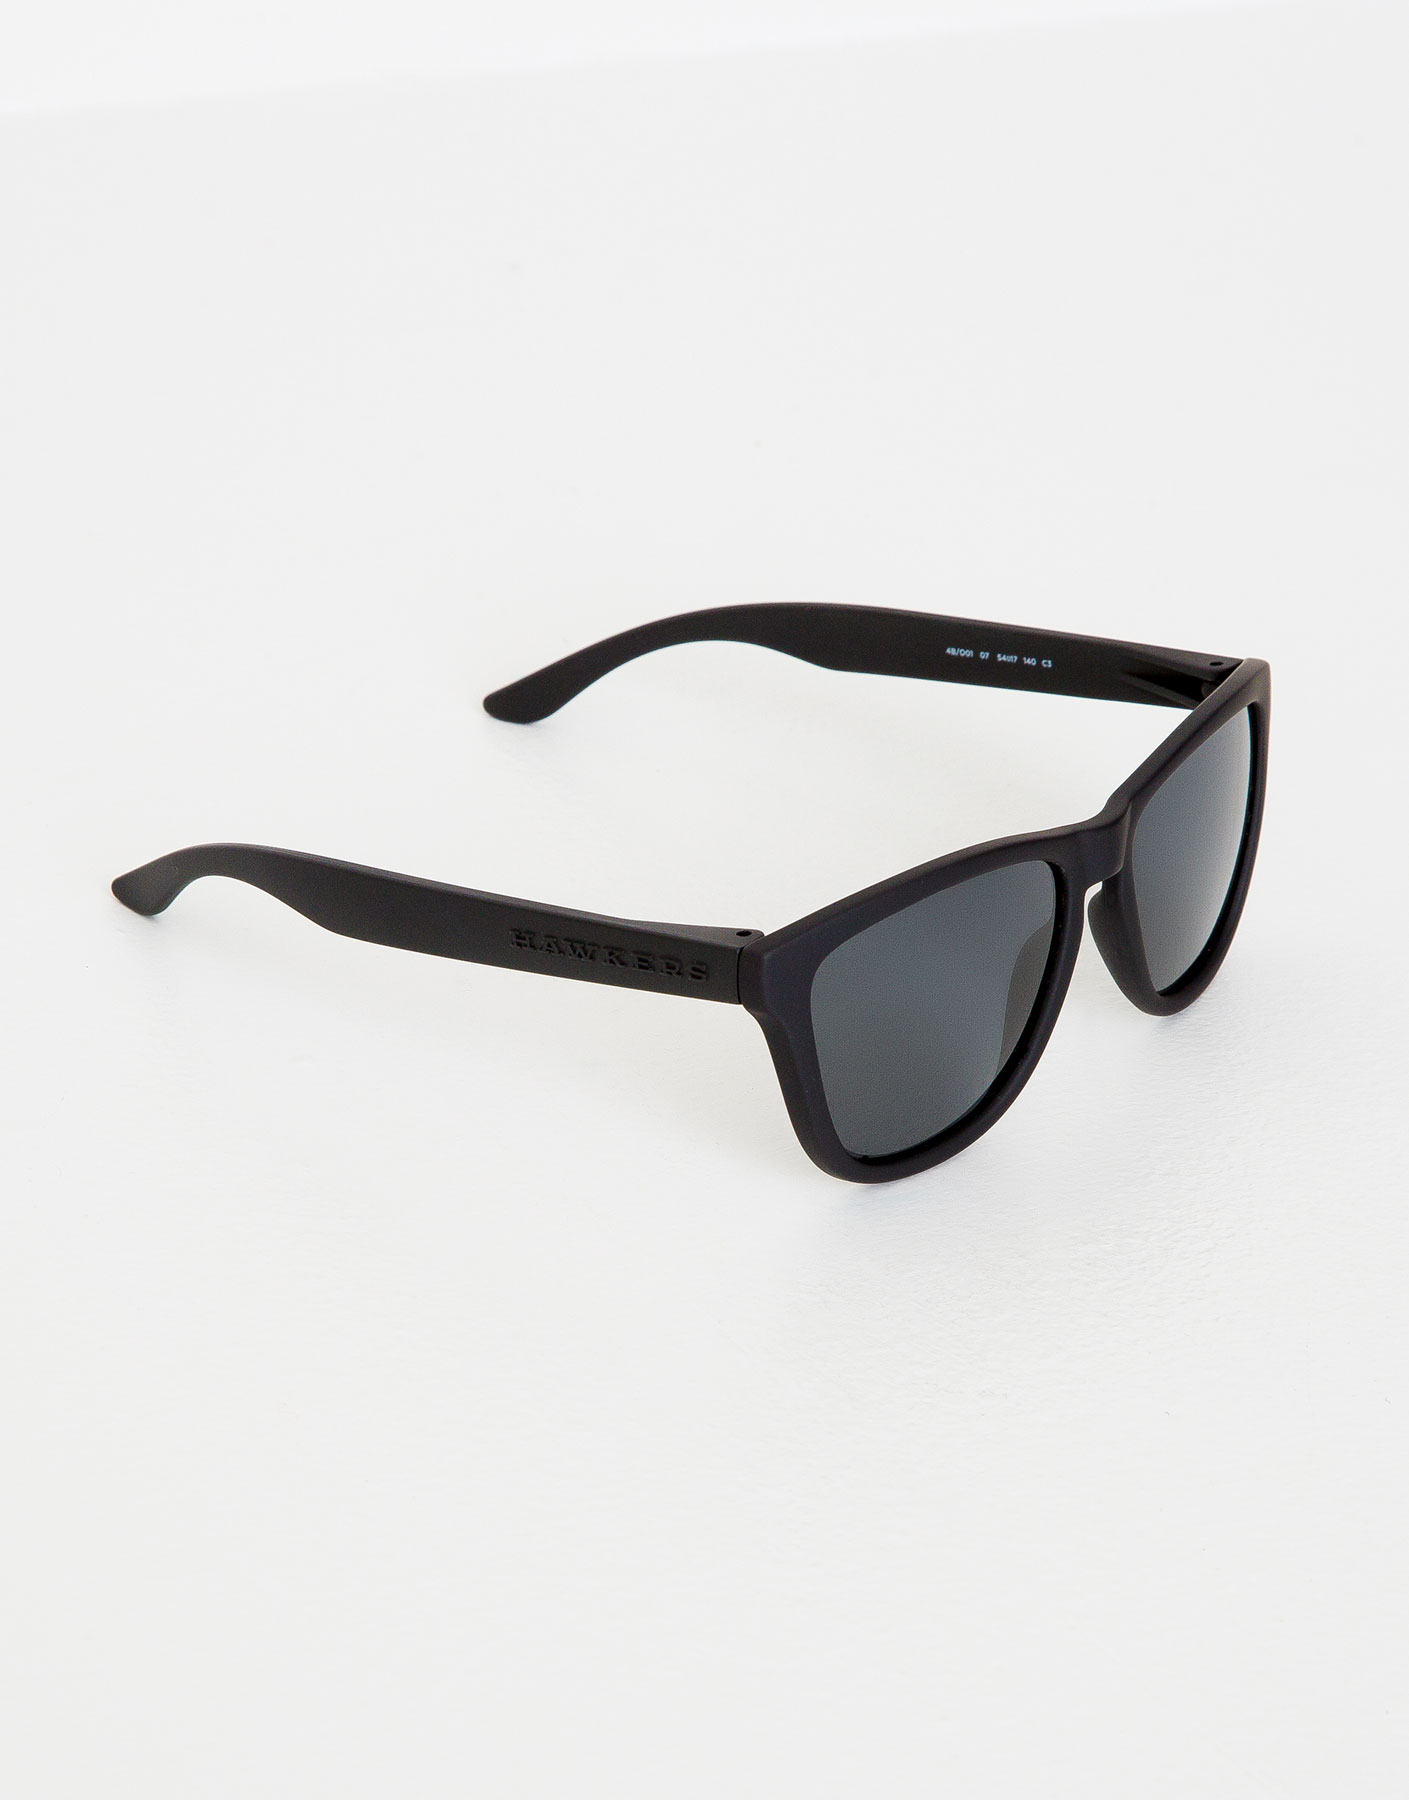 Lentes de sol hawkers carbon black dark one